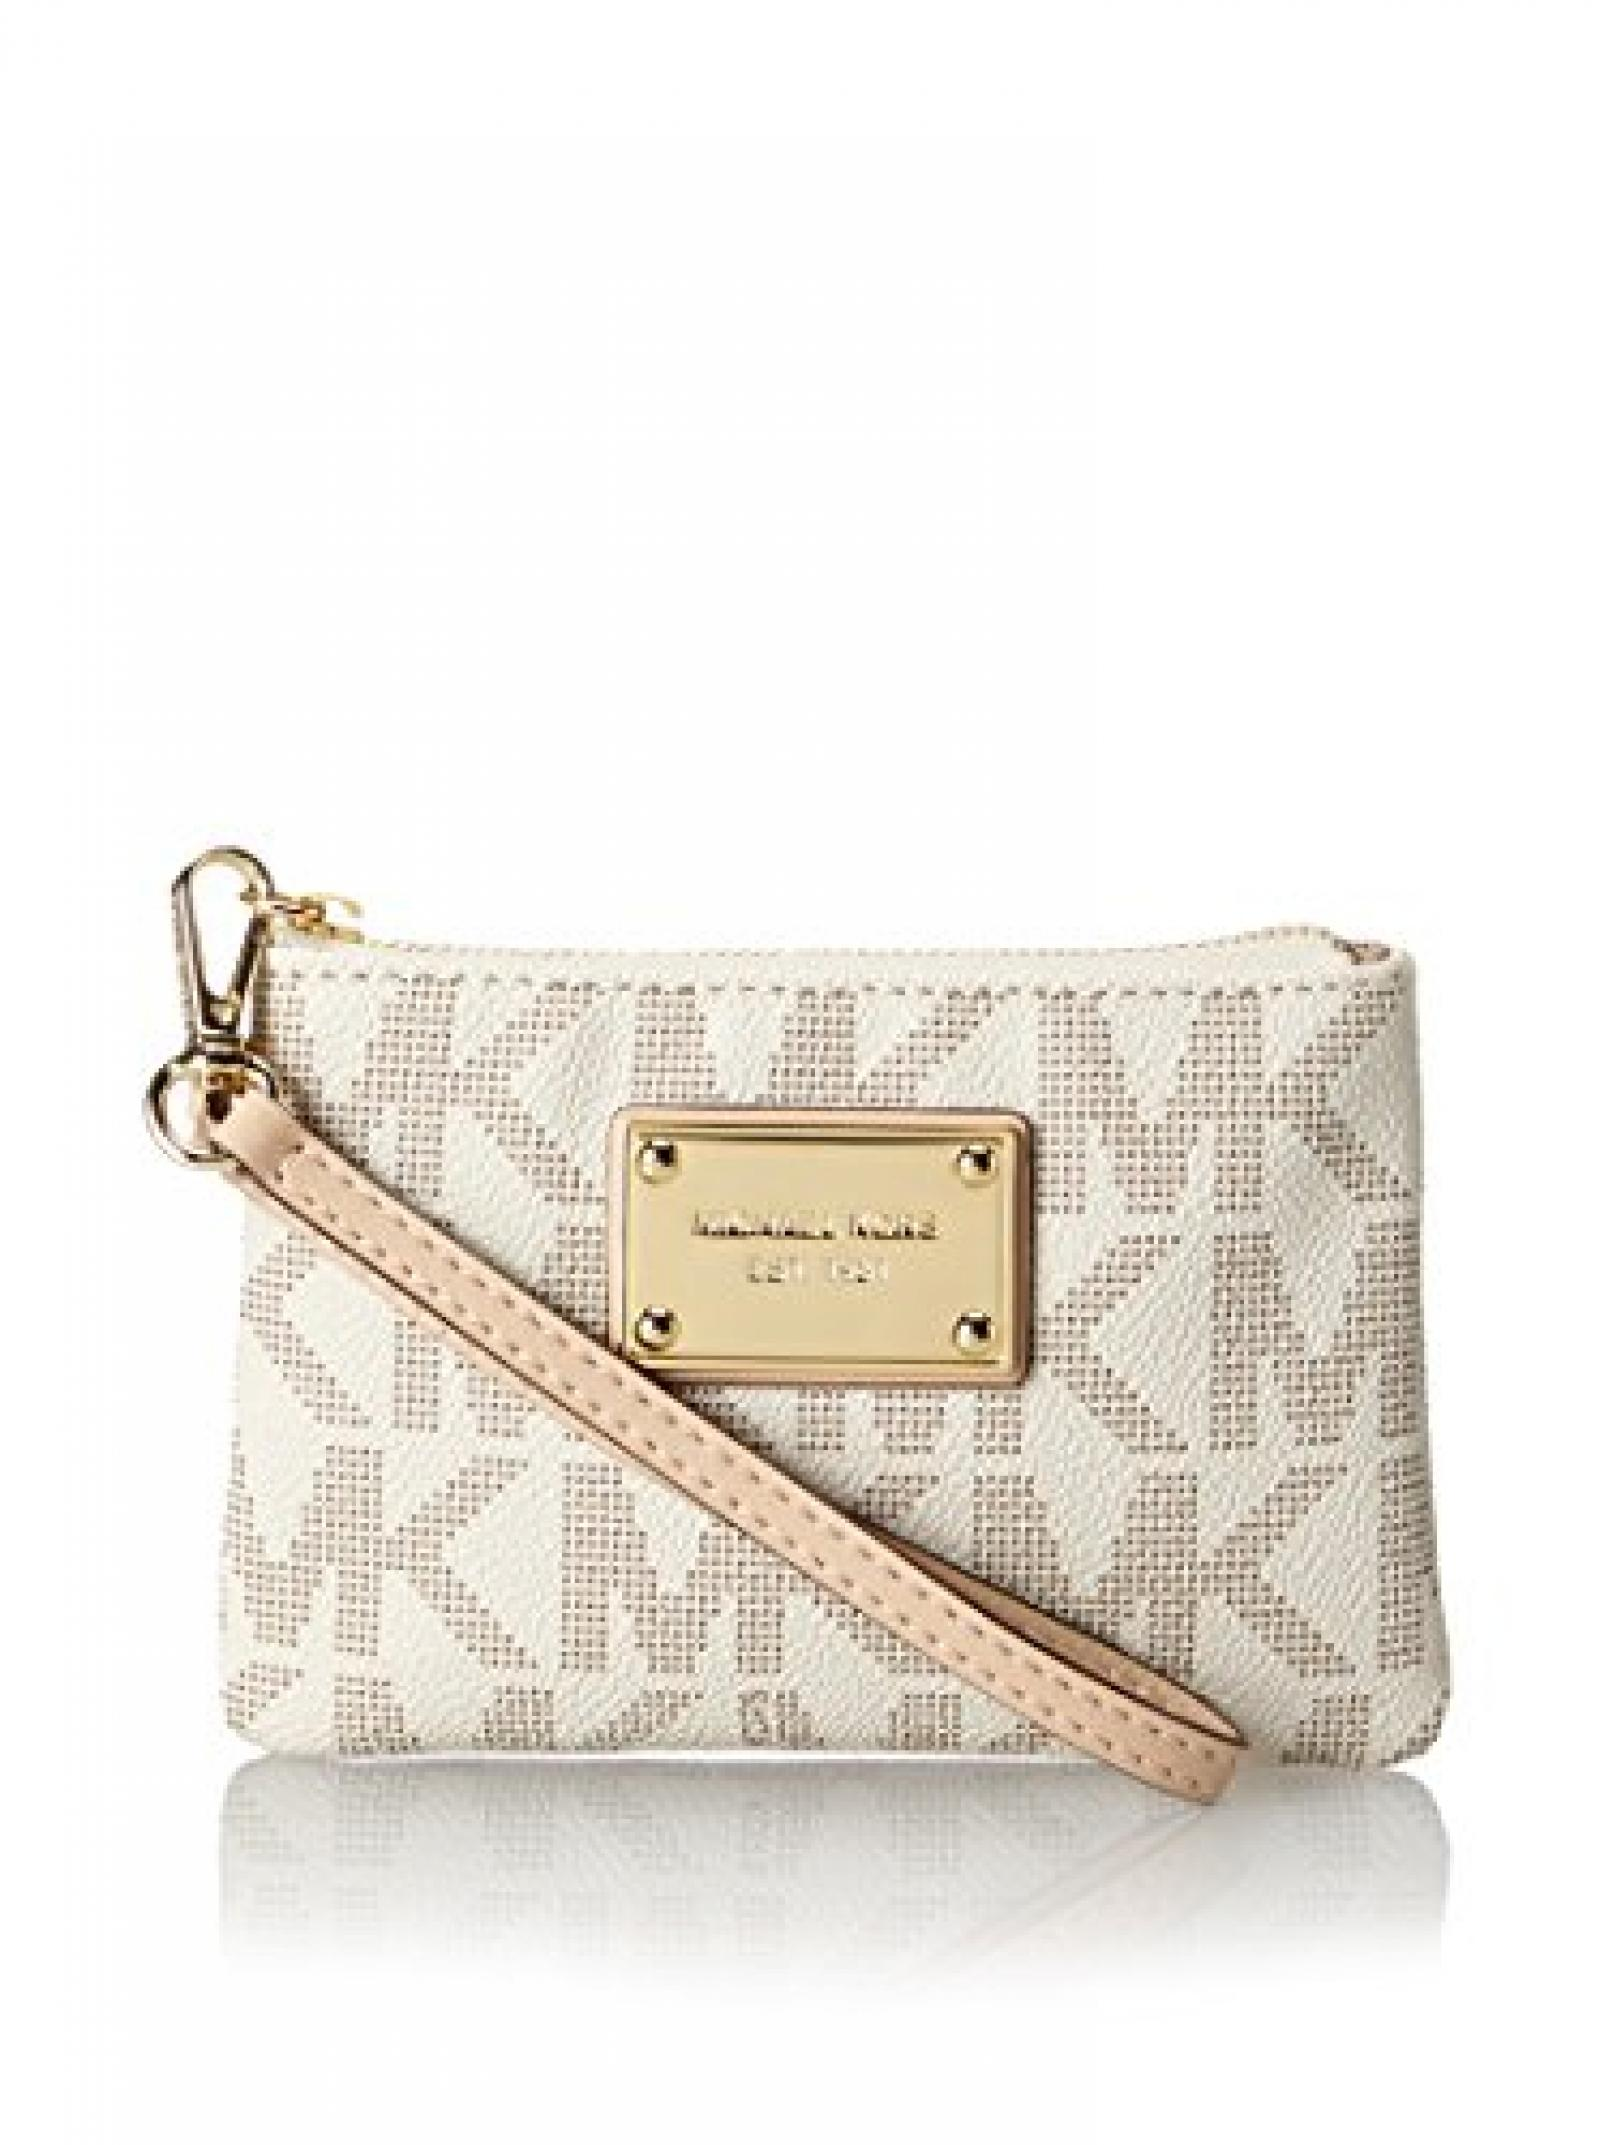 Michael Kors Handbag Jet Set Small Signature Wristlet Vanilla [Apparel]